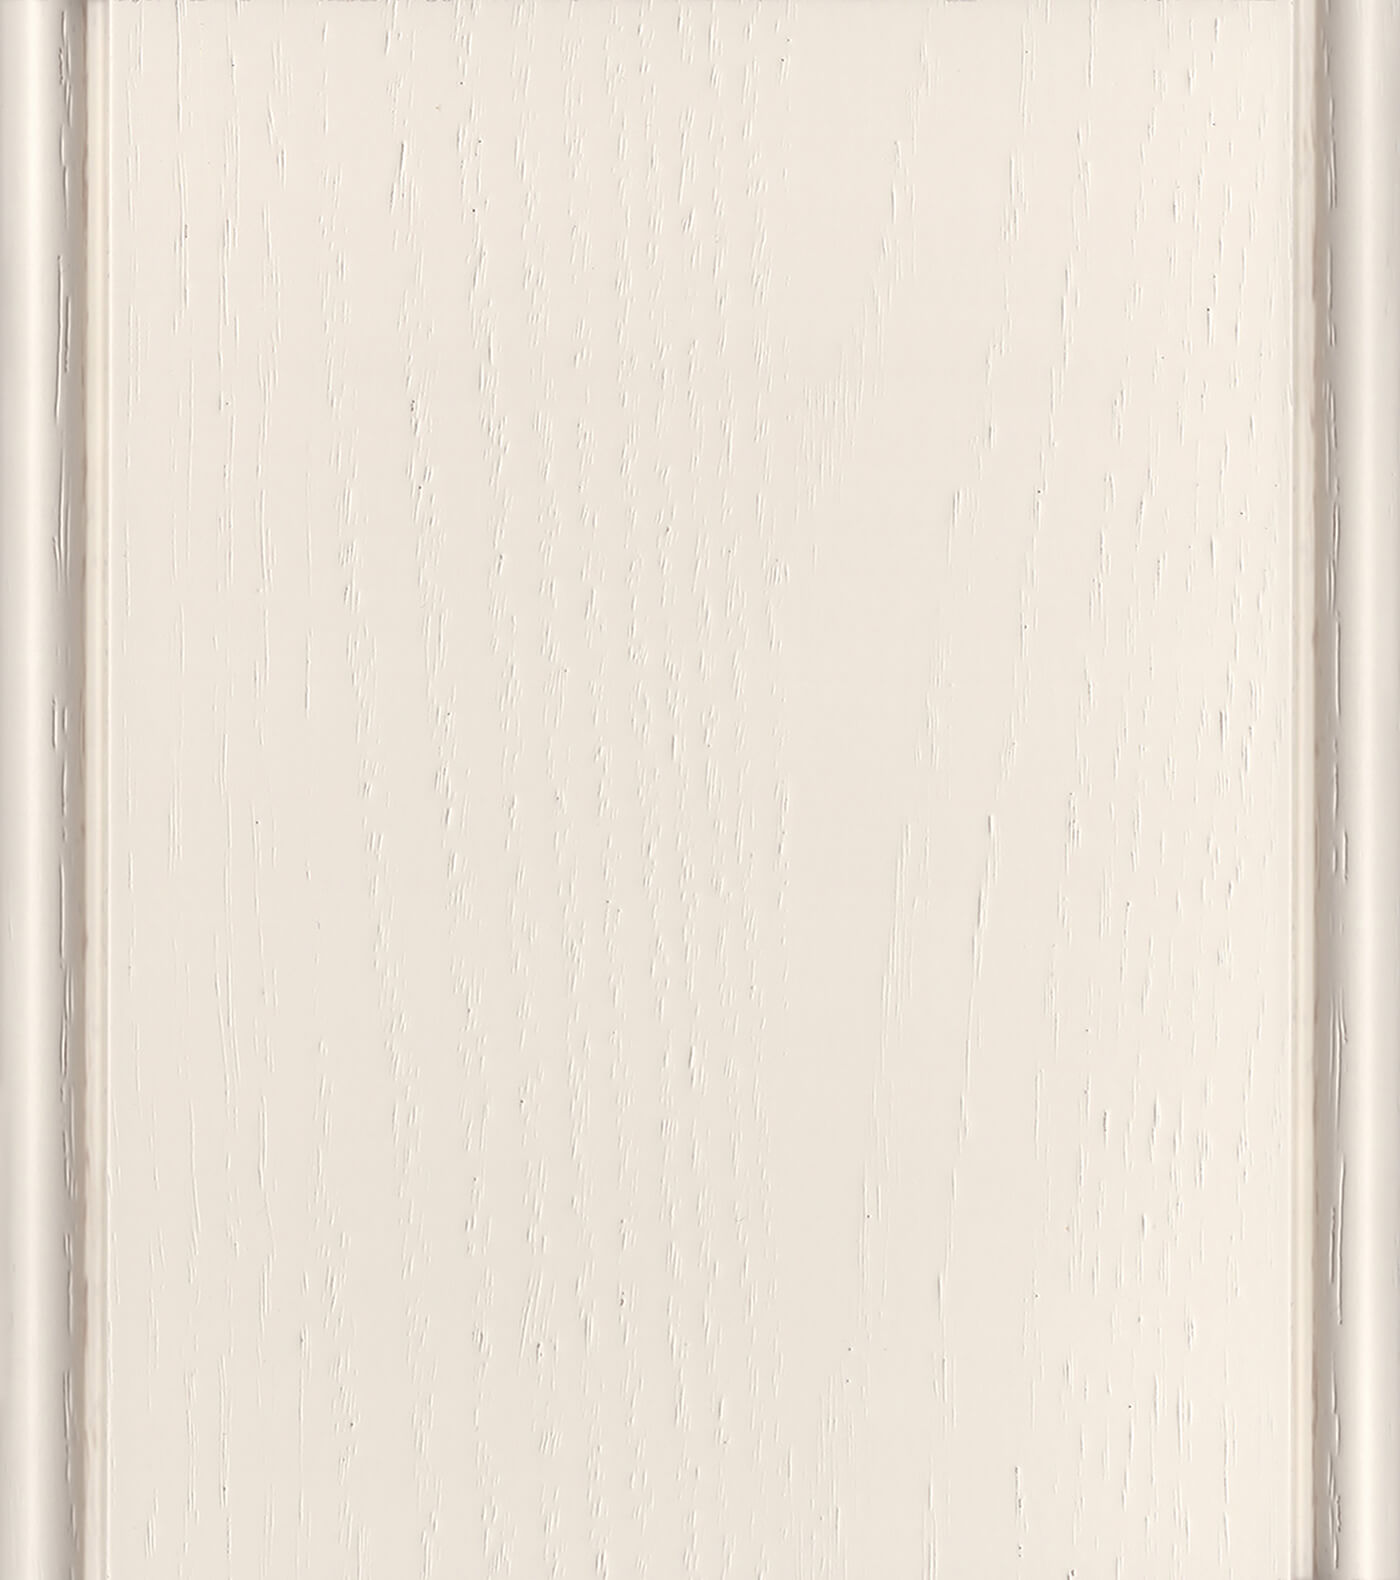 Antique White Paint on Red Oak or Quarter-Sawn Red Oak